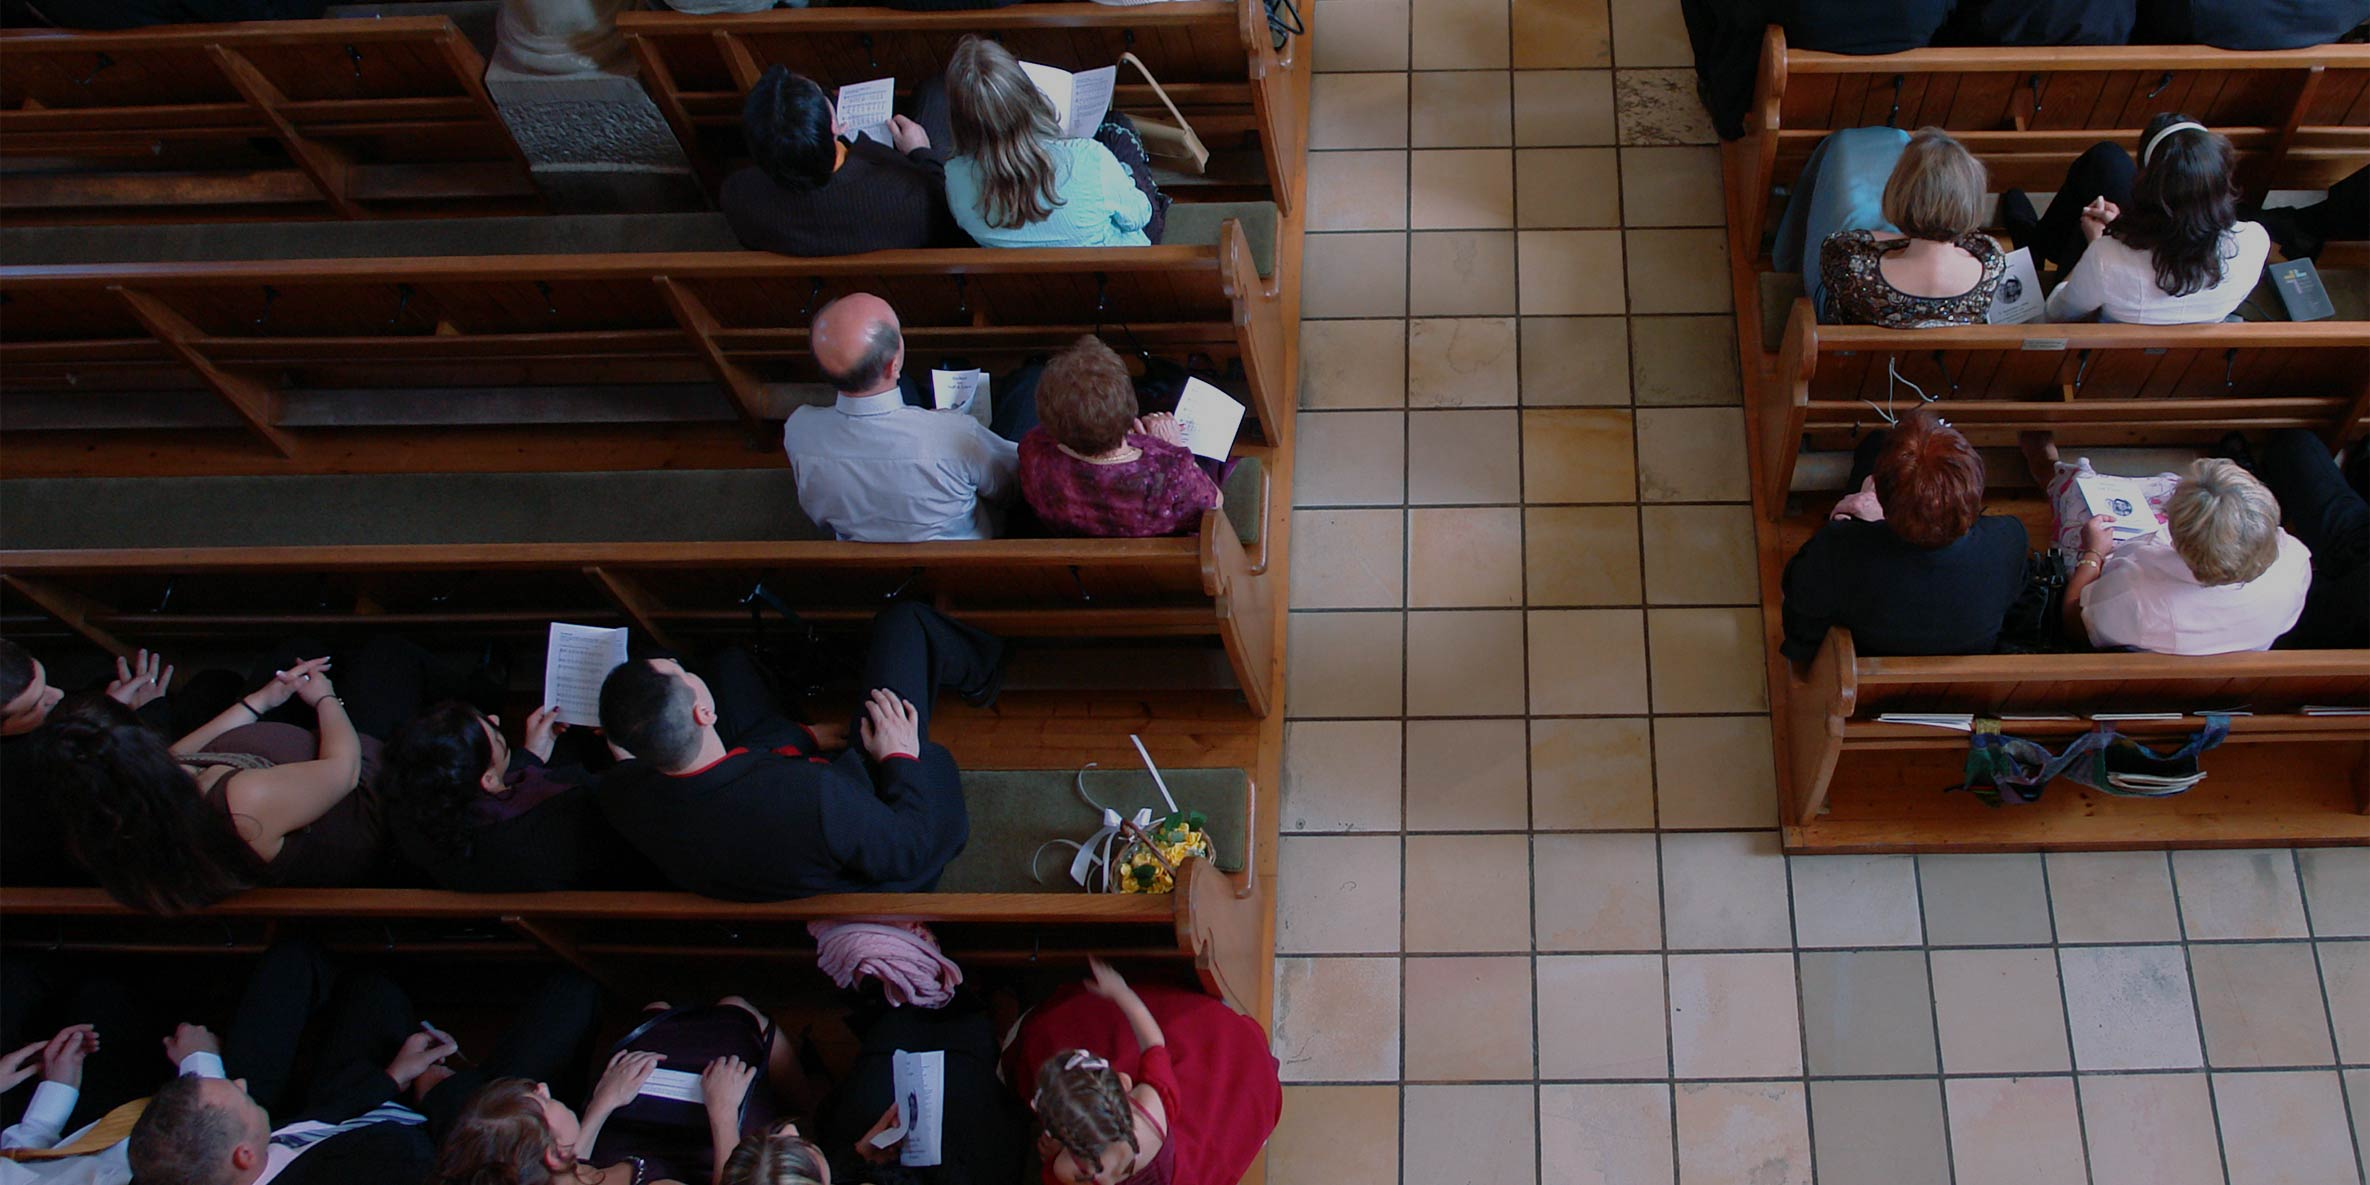 Church Security: Video Surveillance Considerations